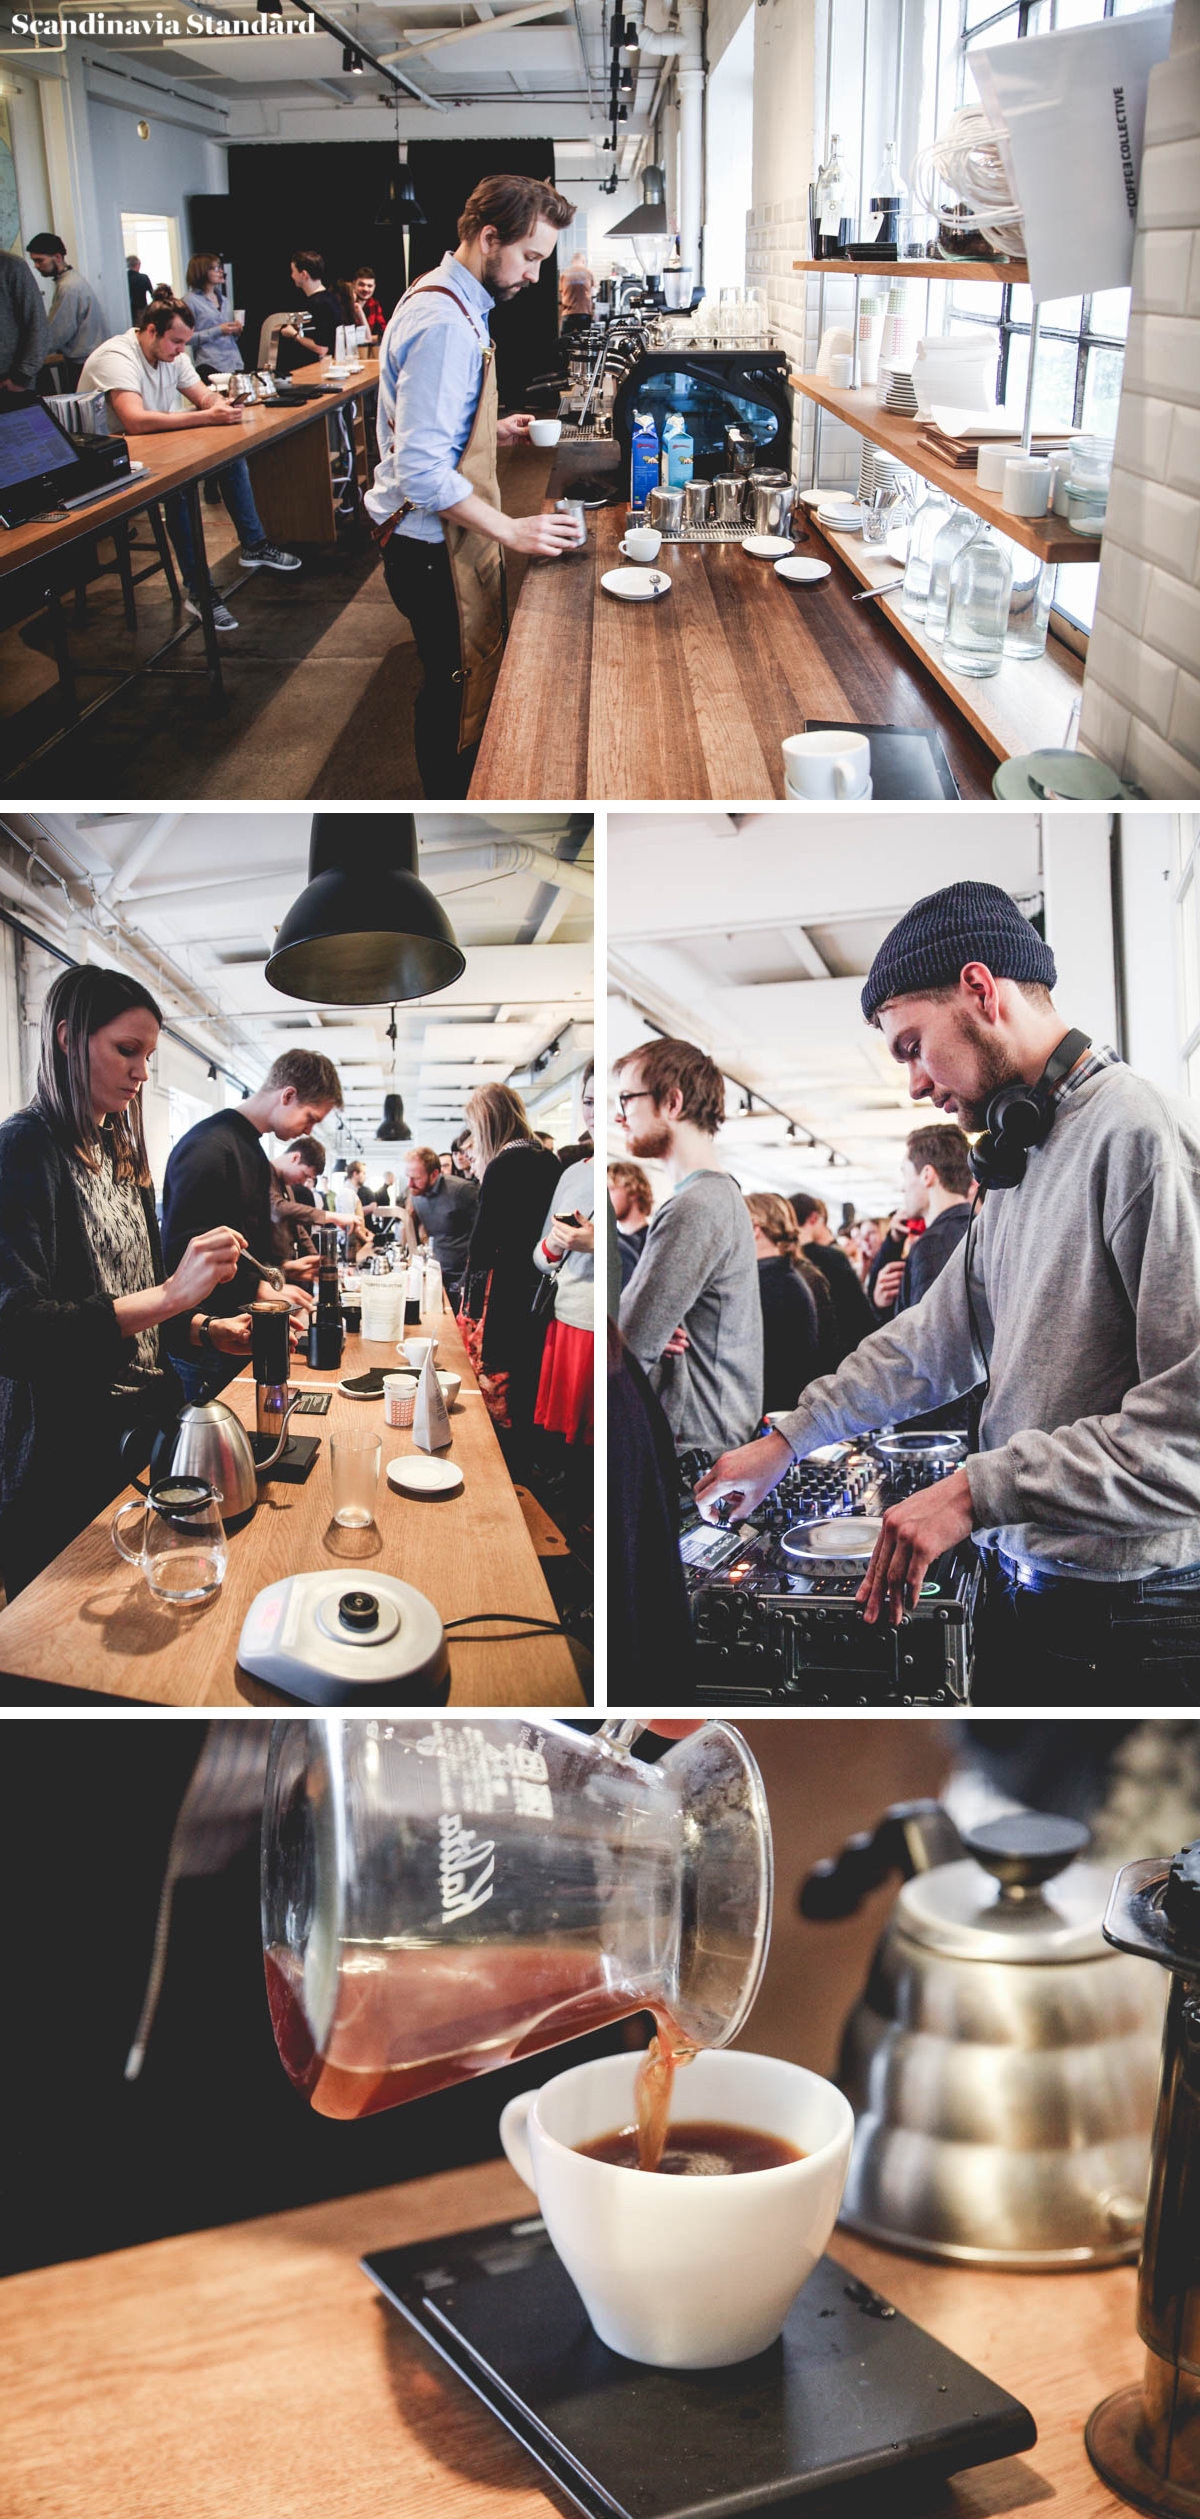 Aeropress Championship Collage Copenhagen | Coffee Collective | Scandinavia Standard